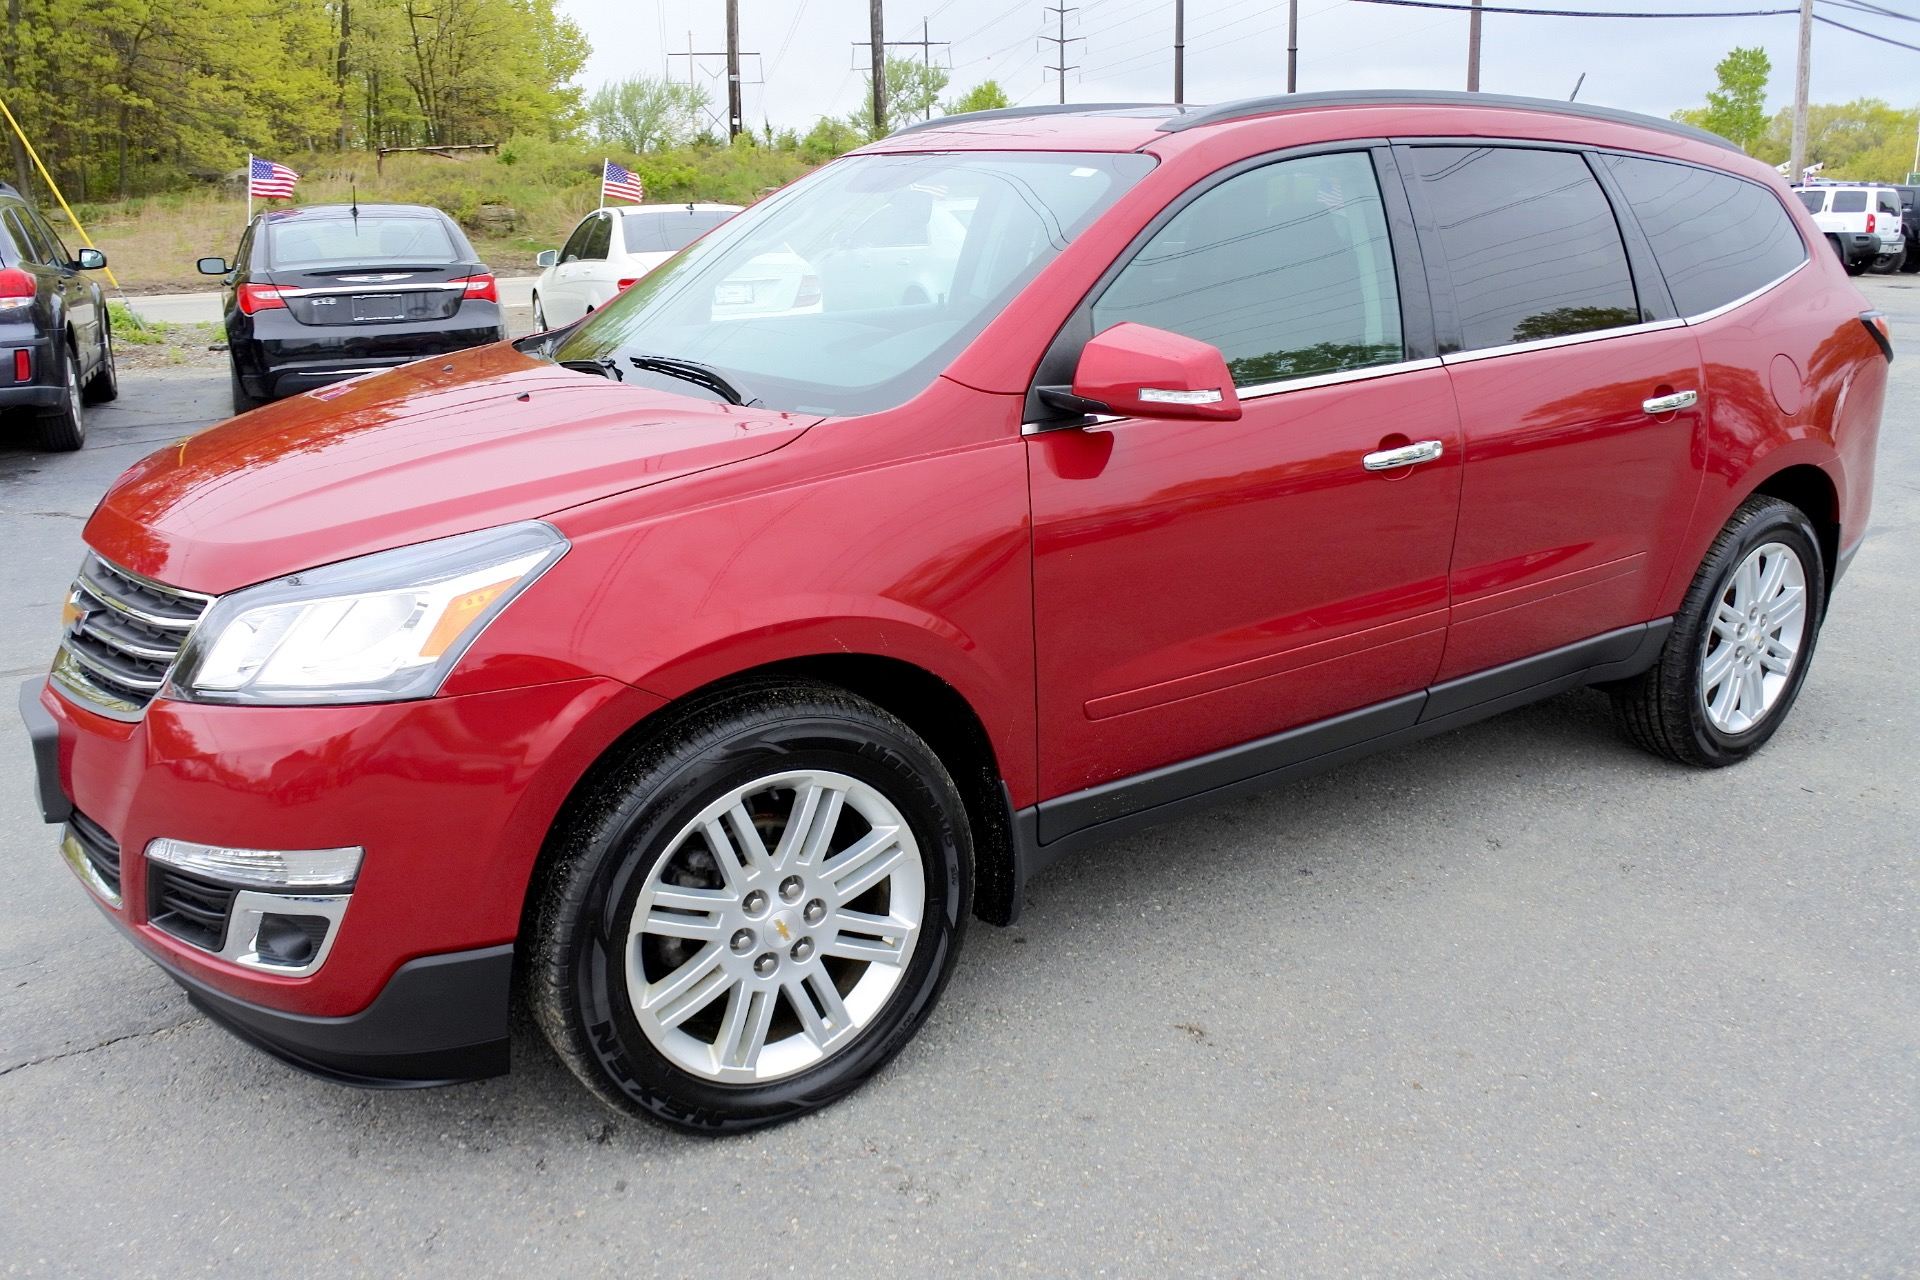 Used 2013 Chevrolet Traverse AWD 4dr LT w/1LT Used 2013 Chevrolet Traverse AWD 4dr LT w/1LT for sale  at Metro West Motorcars LLC in Shrewsbury MA 1